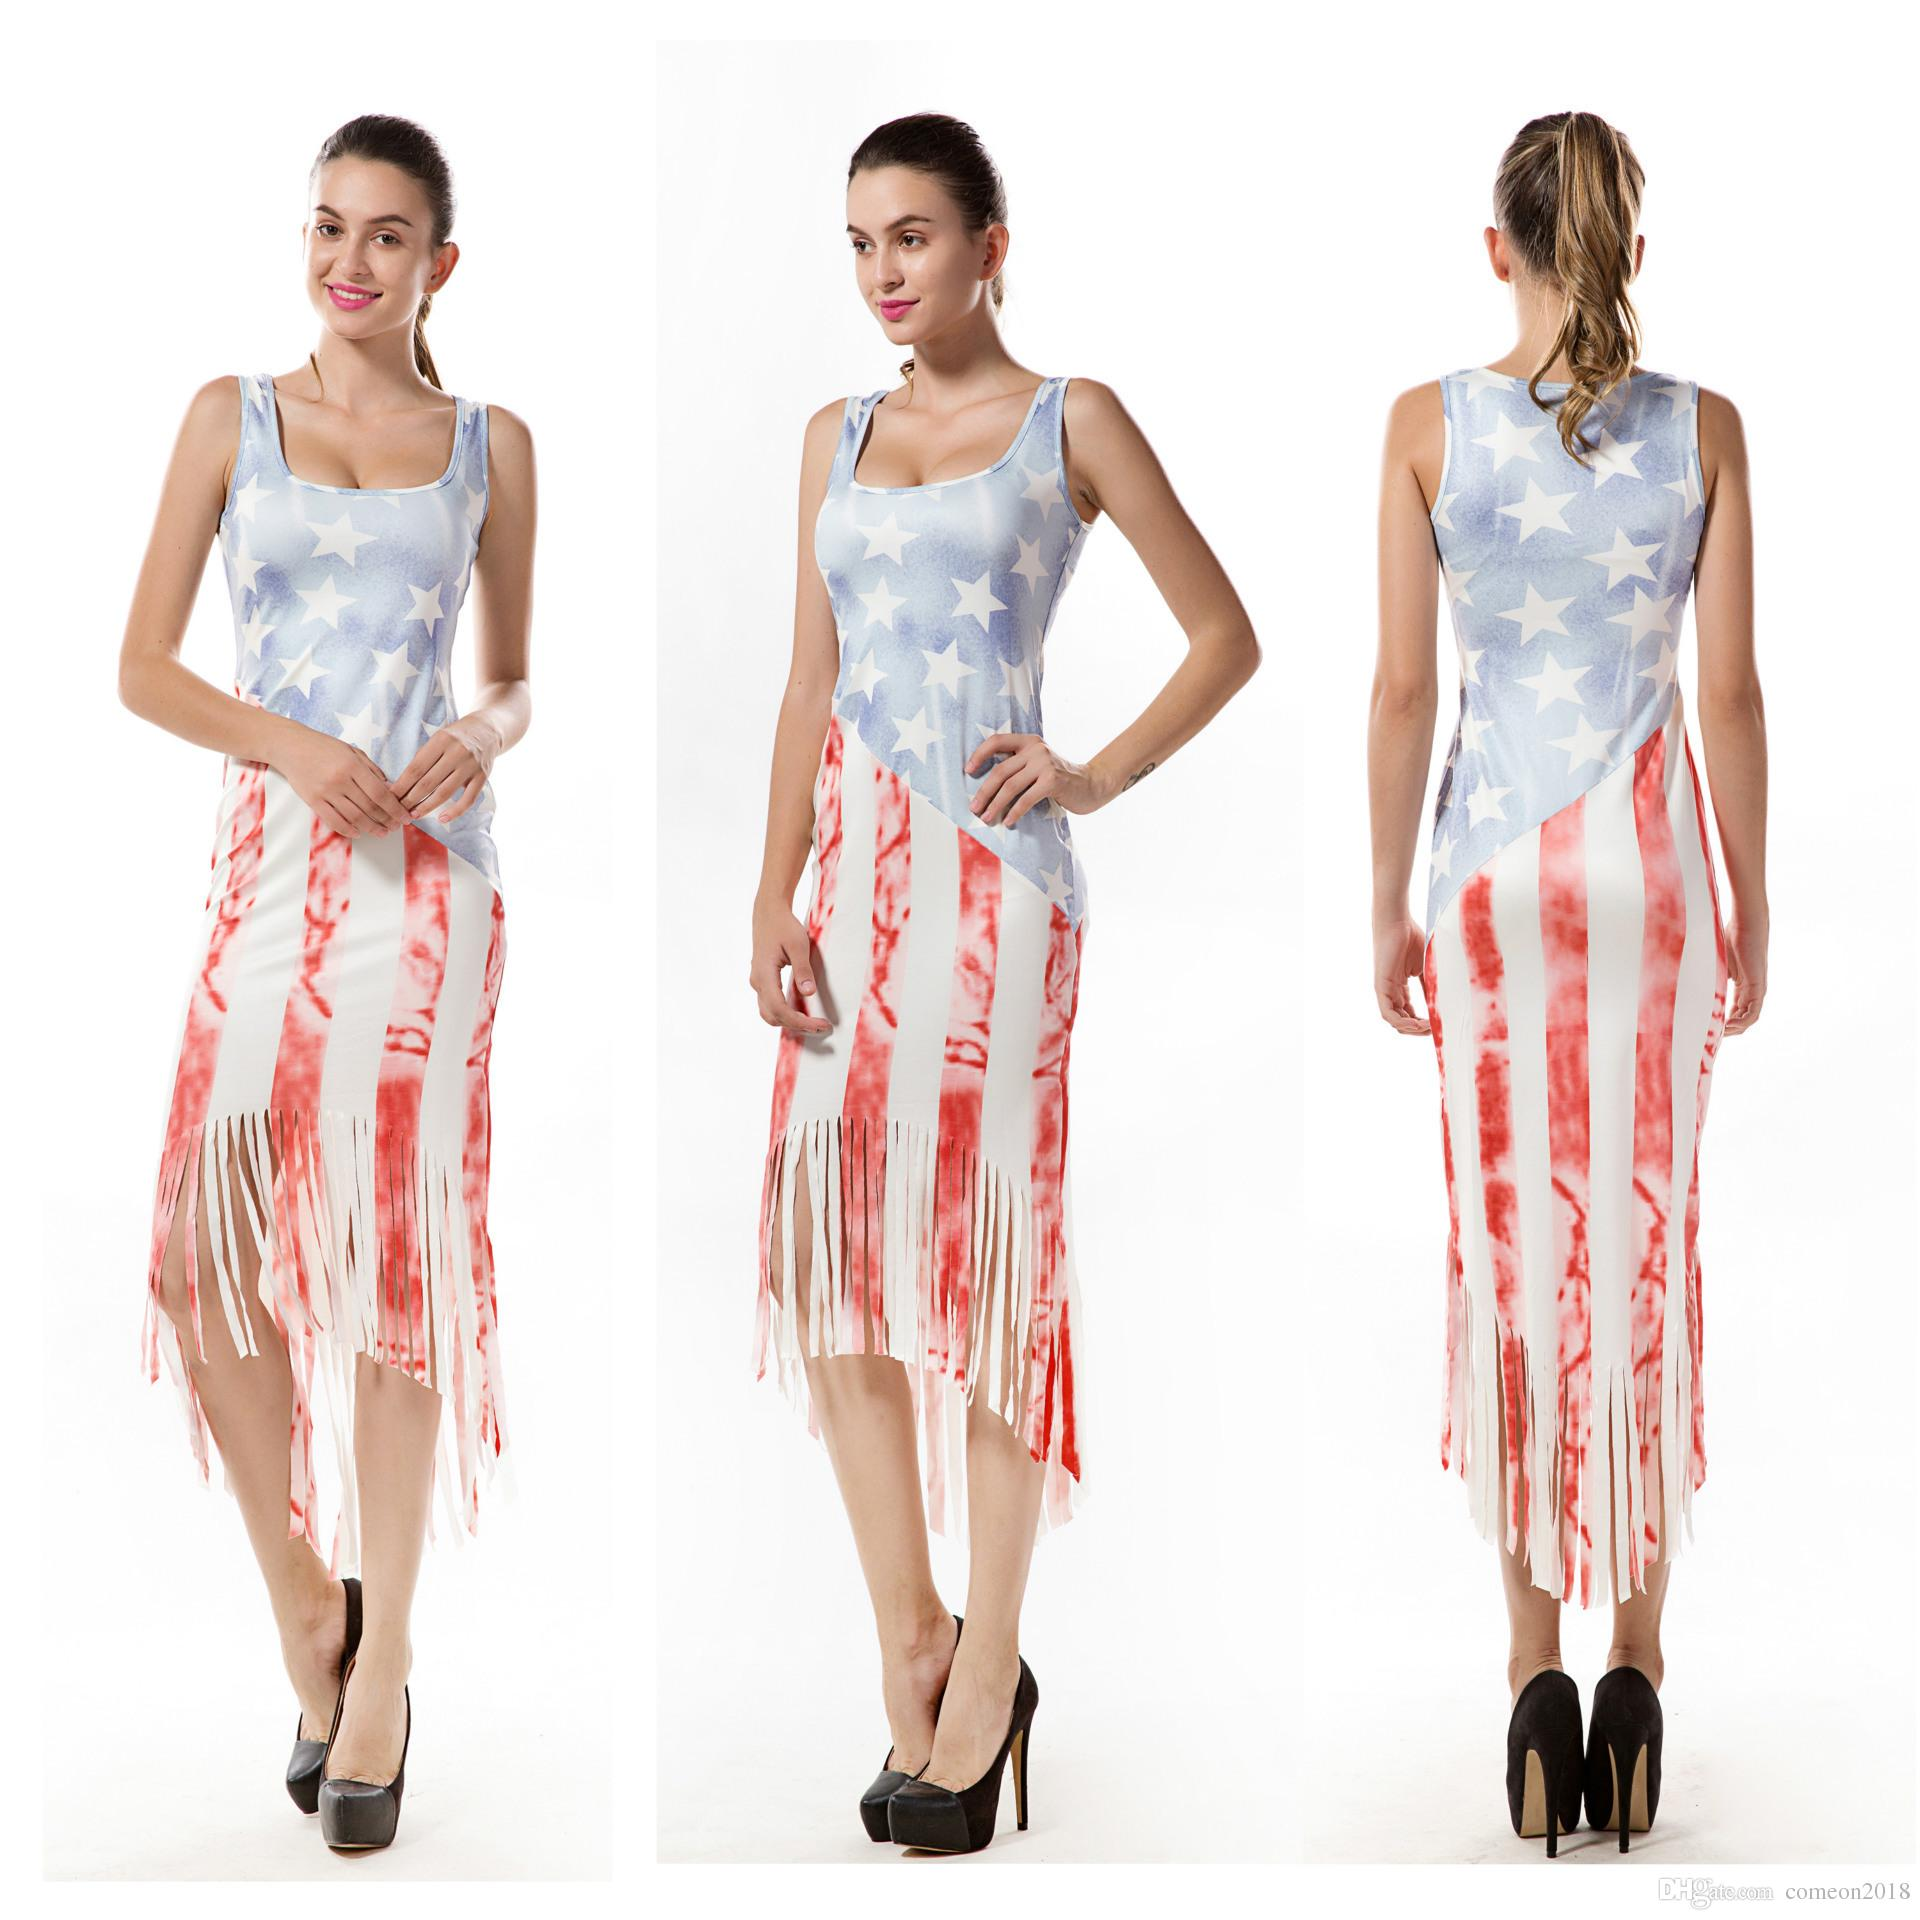 7a2f814d773 Women Ladies Stars Stripe Maxi Dress Tassels 4th Of July Party Independence  Day Plus Size Women Clothing Sleeveless Maternity Print Dresses Short  Formal ...